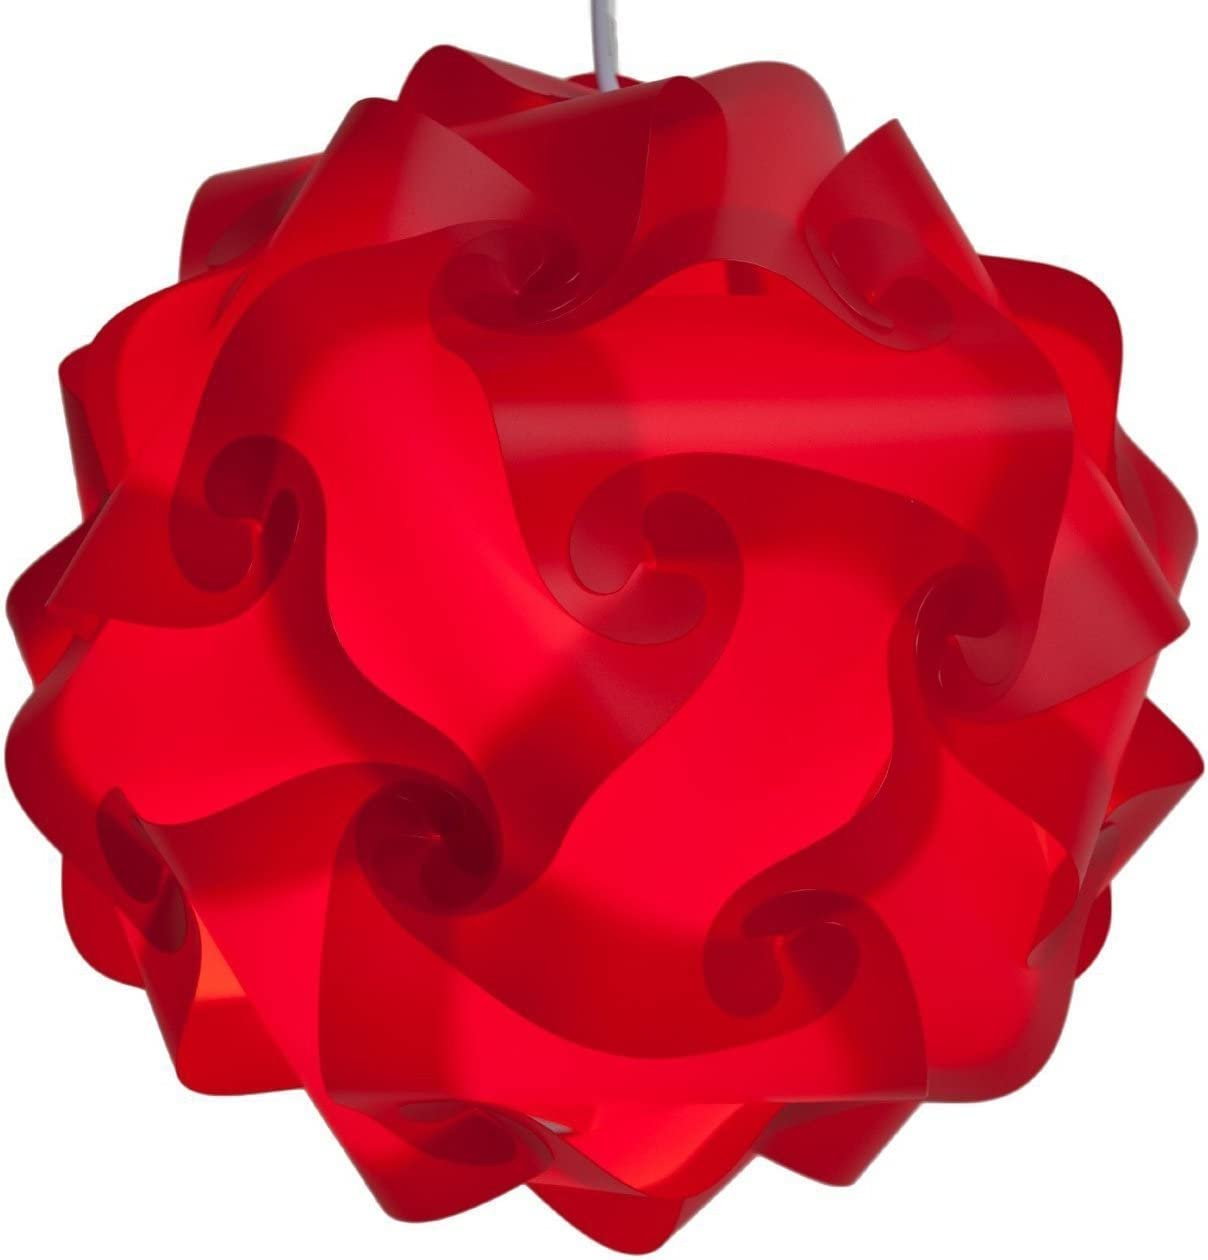 Lightingsky IQ Lamp Shade Toy Self DIY Assembled Puzzle Lights for Room Decoration Sky, Small-25cm